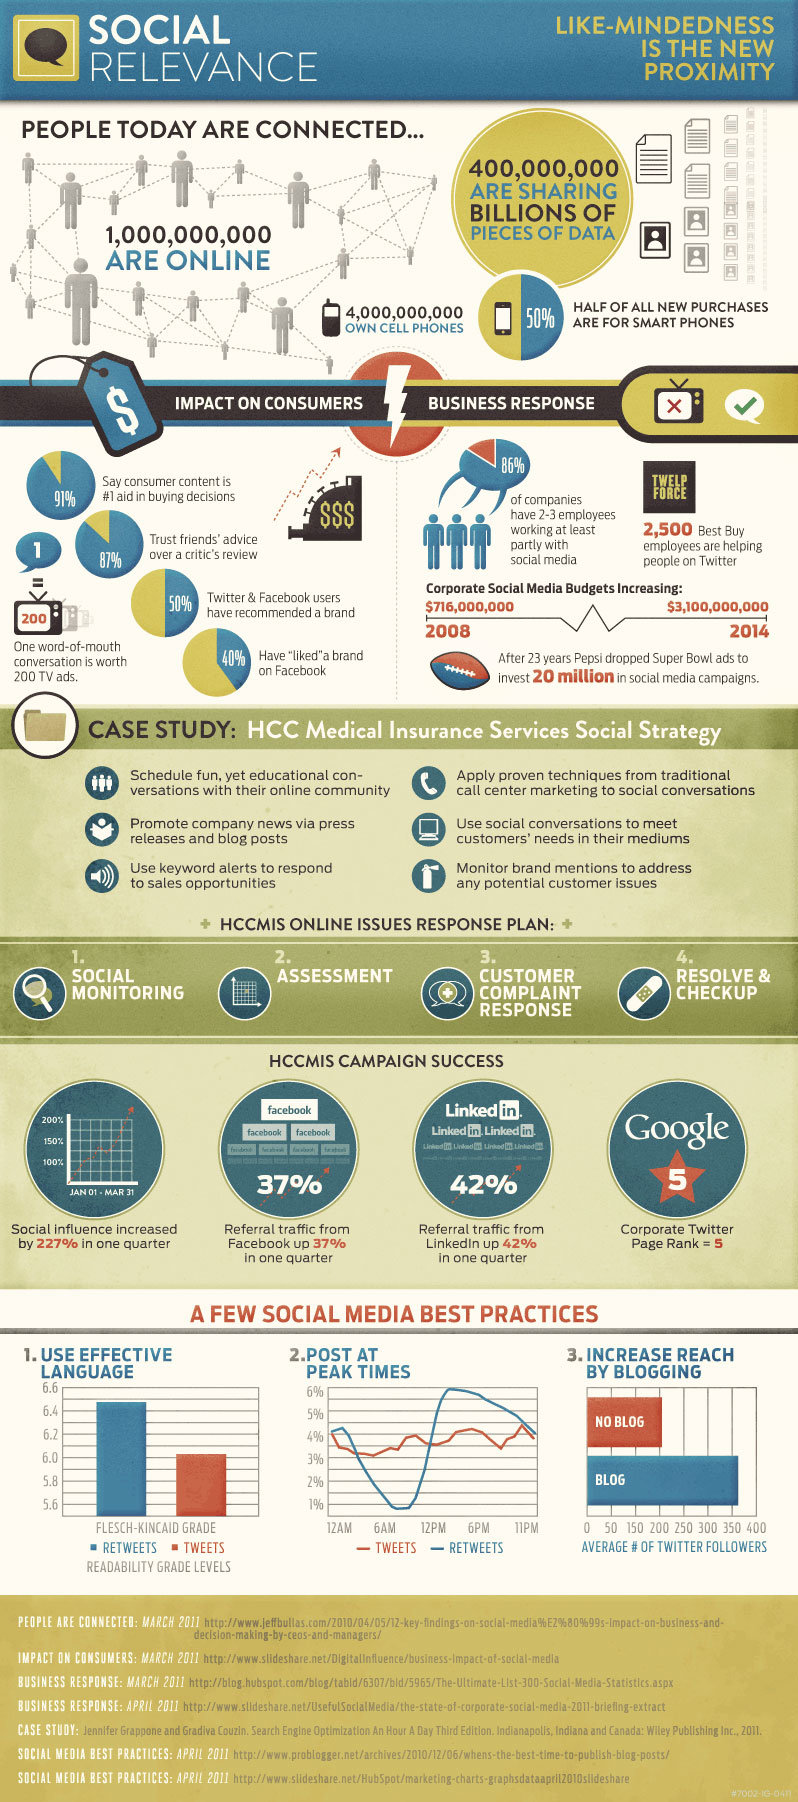 Social relevance #infographic